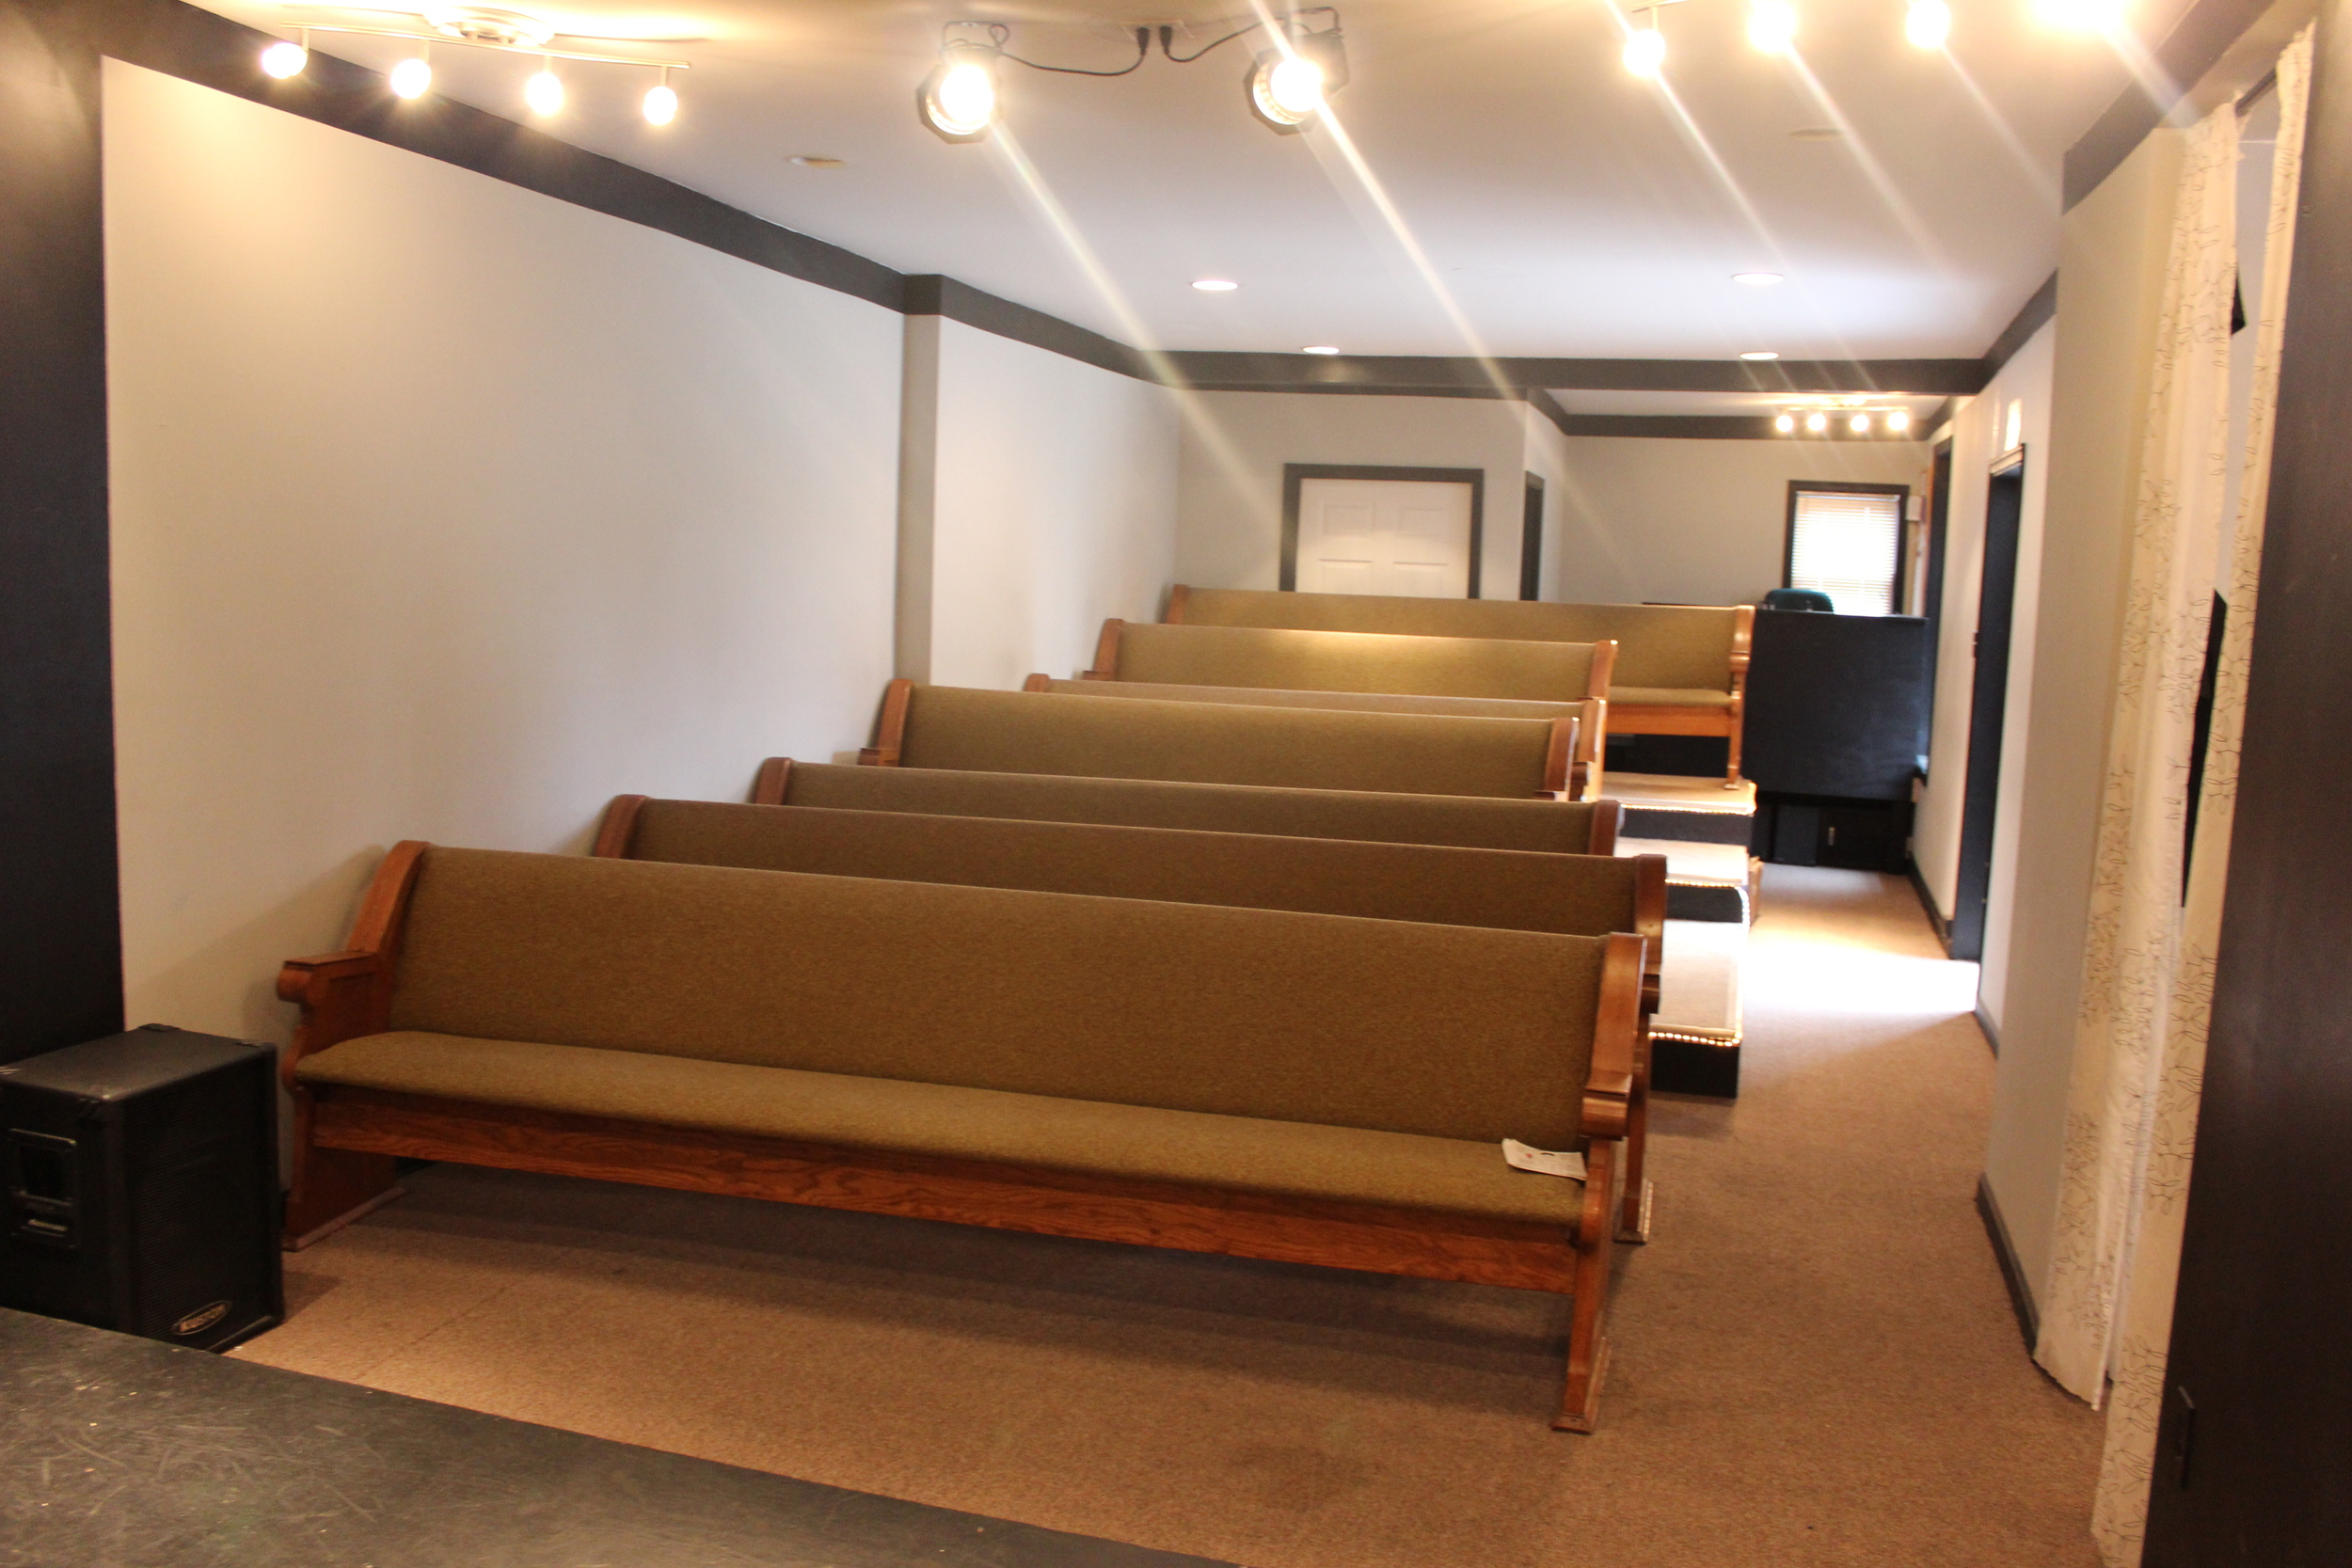 Audience seating area